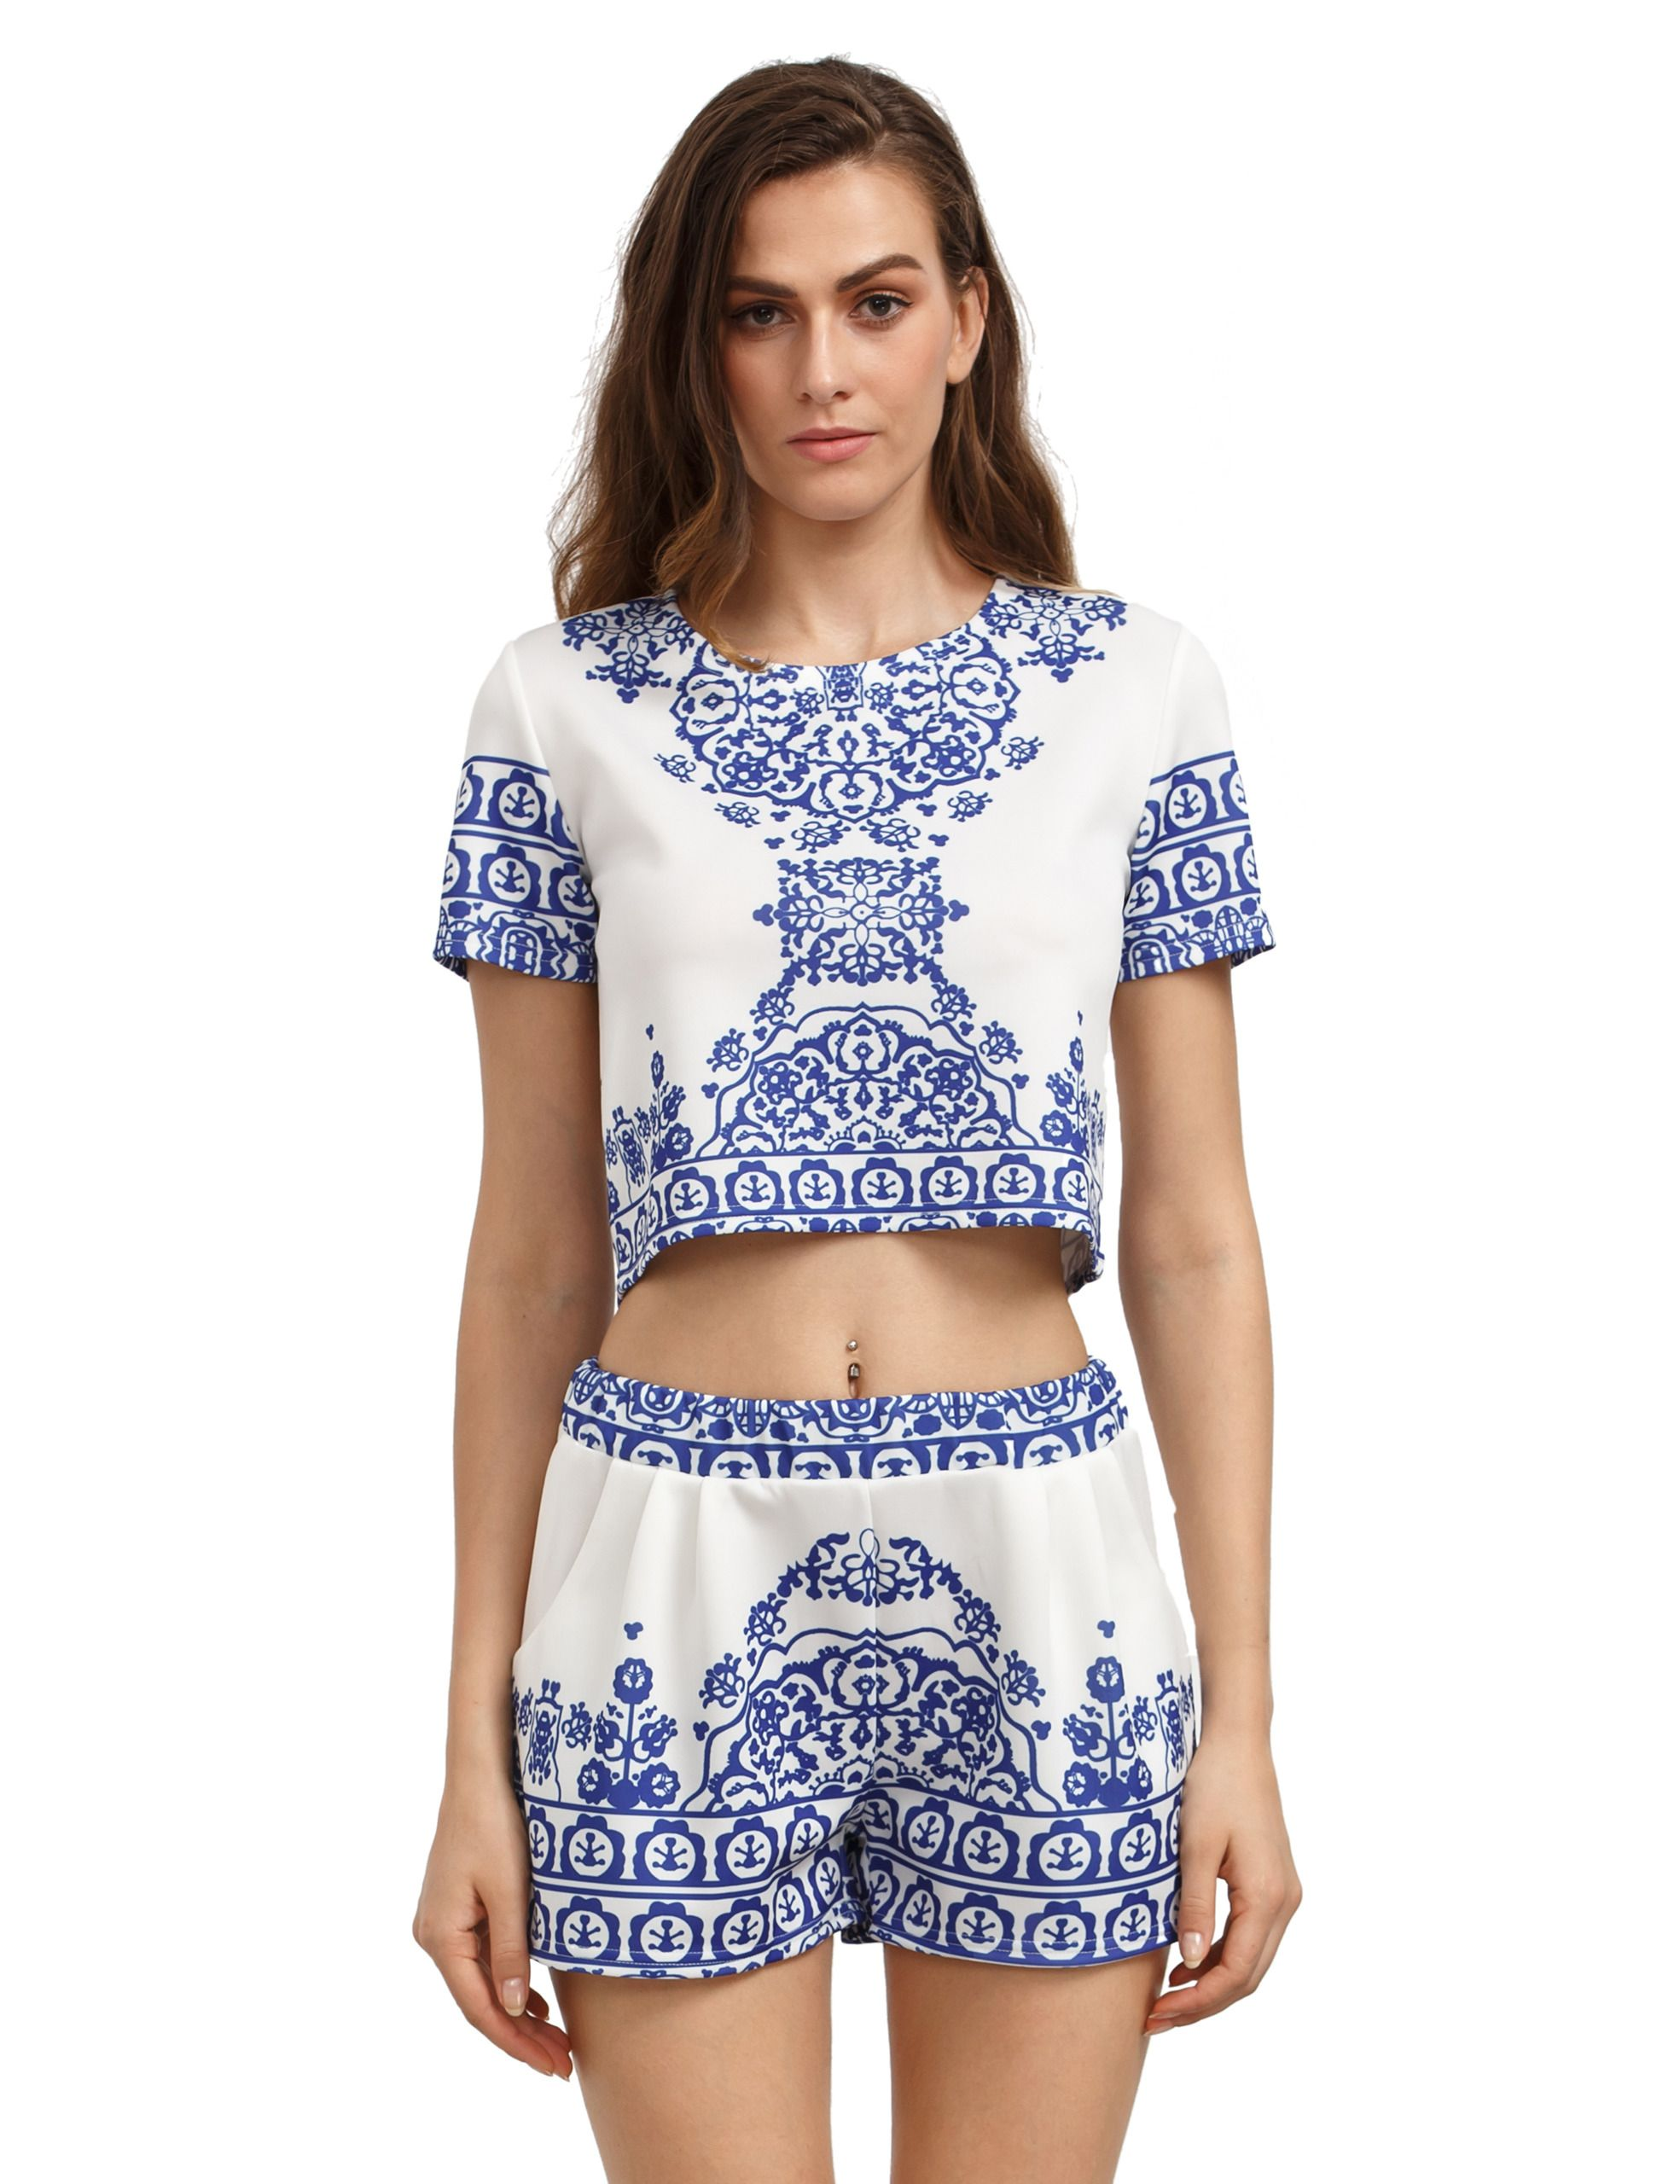 Blue White Short Sleeve Floral Crop Top With Shorts | Ropa ...